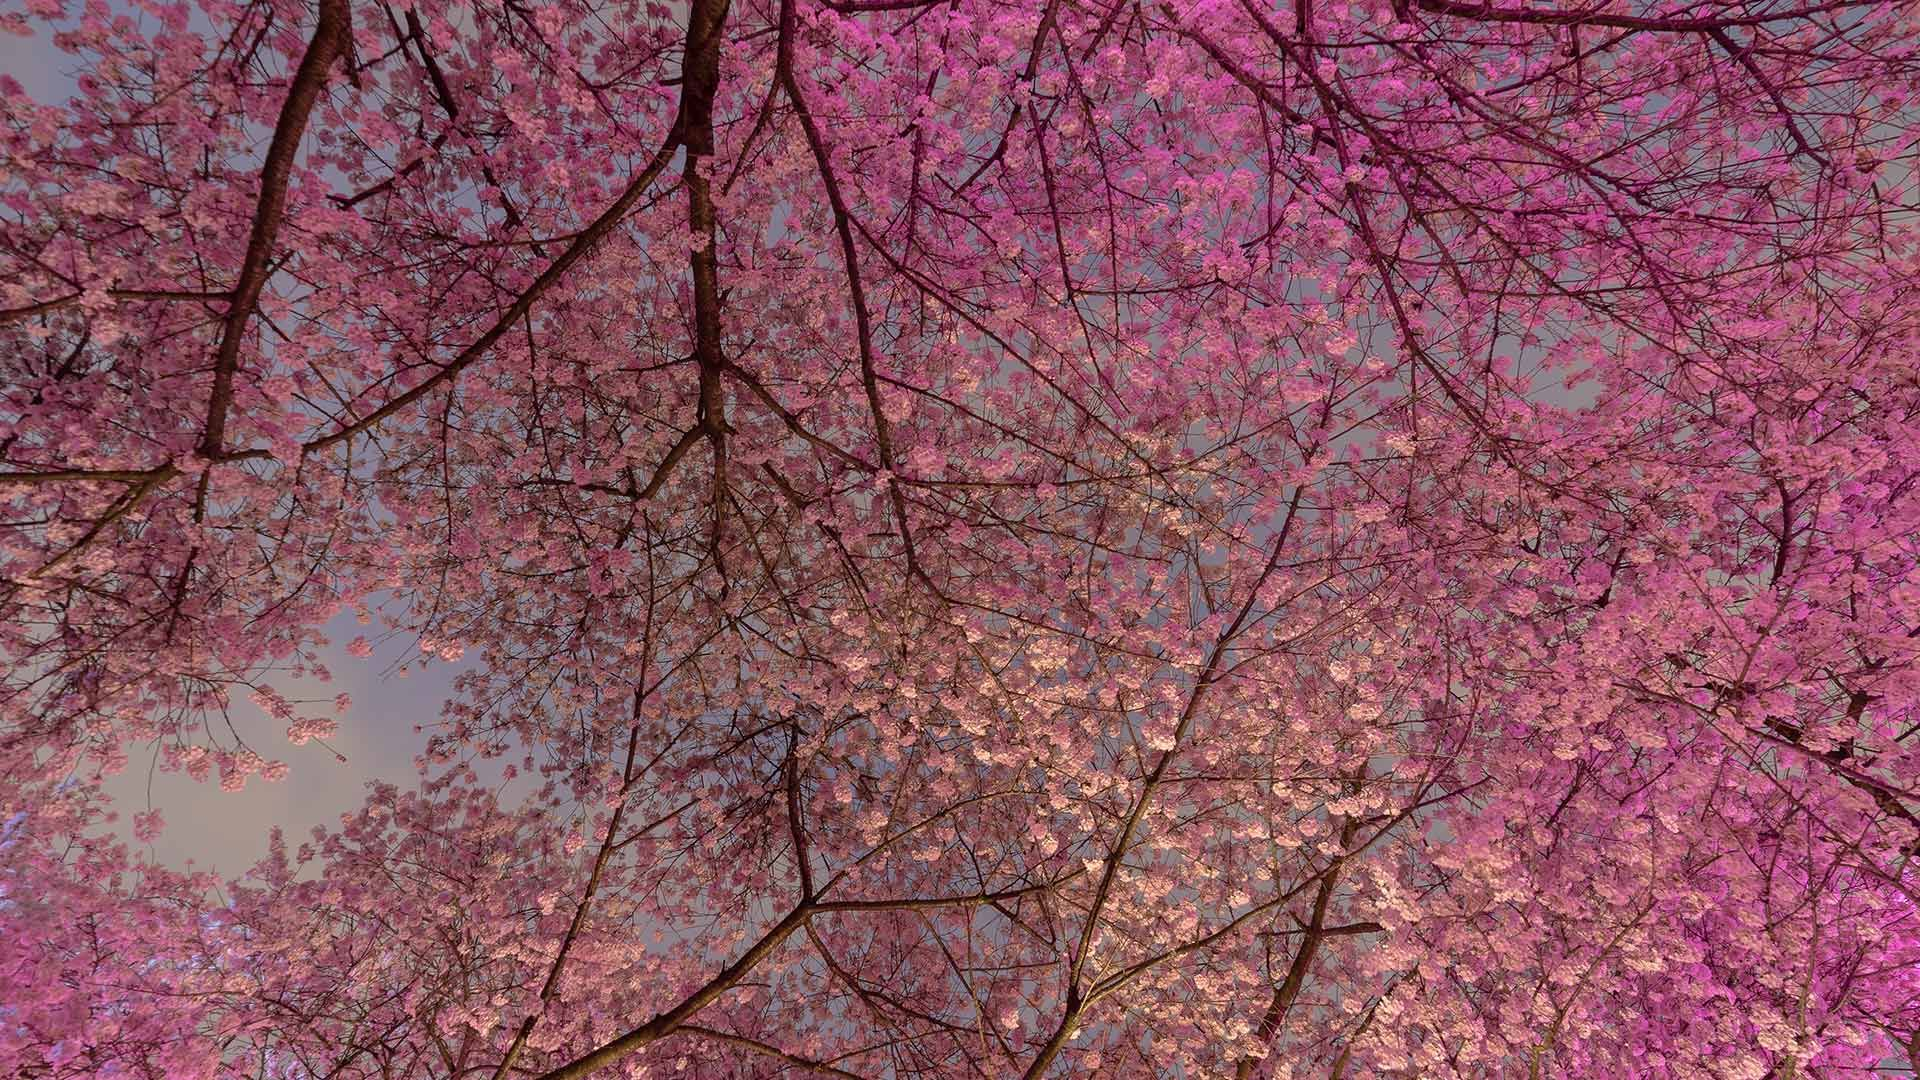 Blooming Cherry Trees In Vancouver B C Canada Bun Lee Getty Images Cherry Blossom Tree Blossom Trees Cherry Blossom Festival